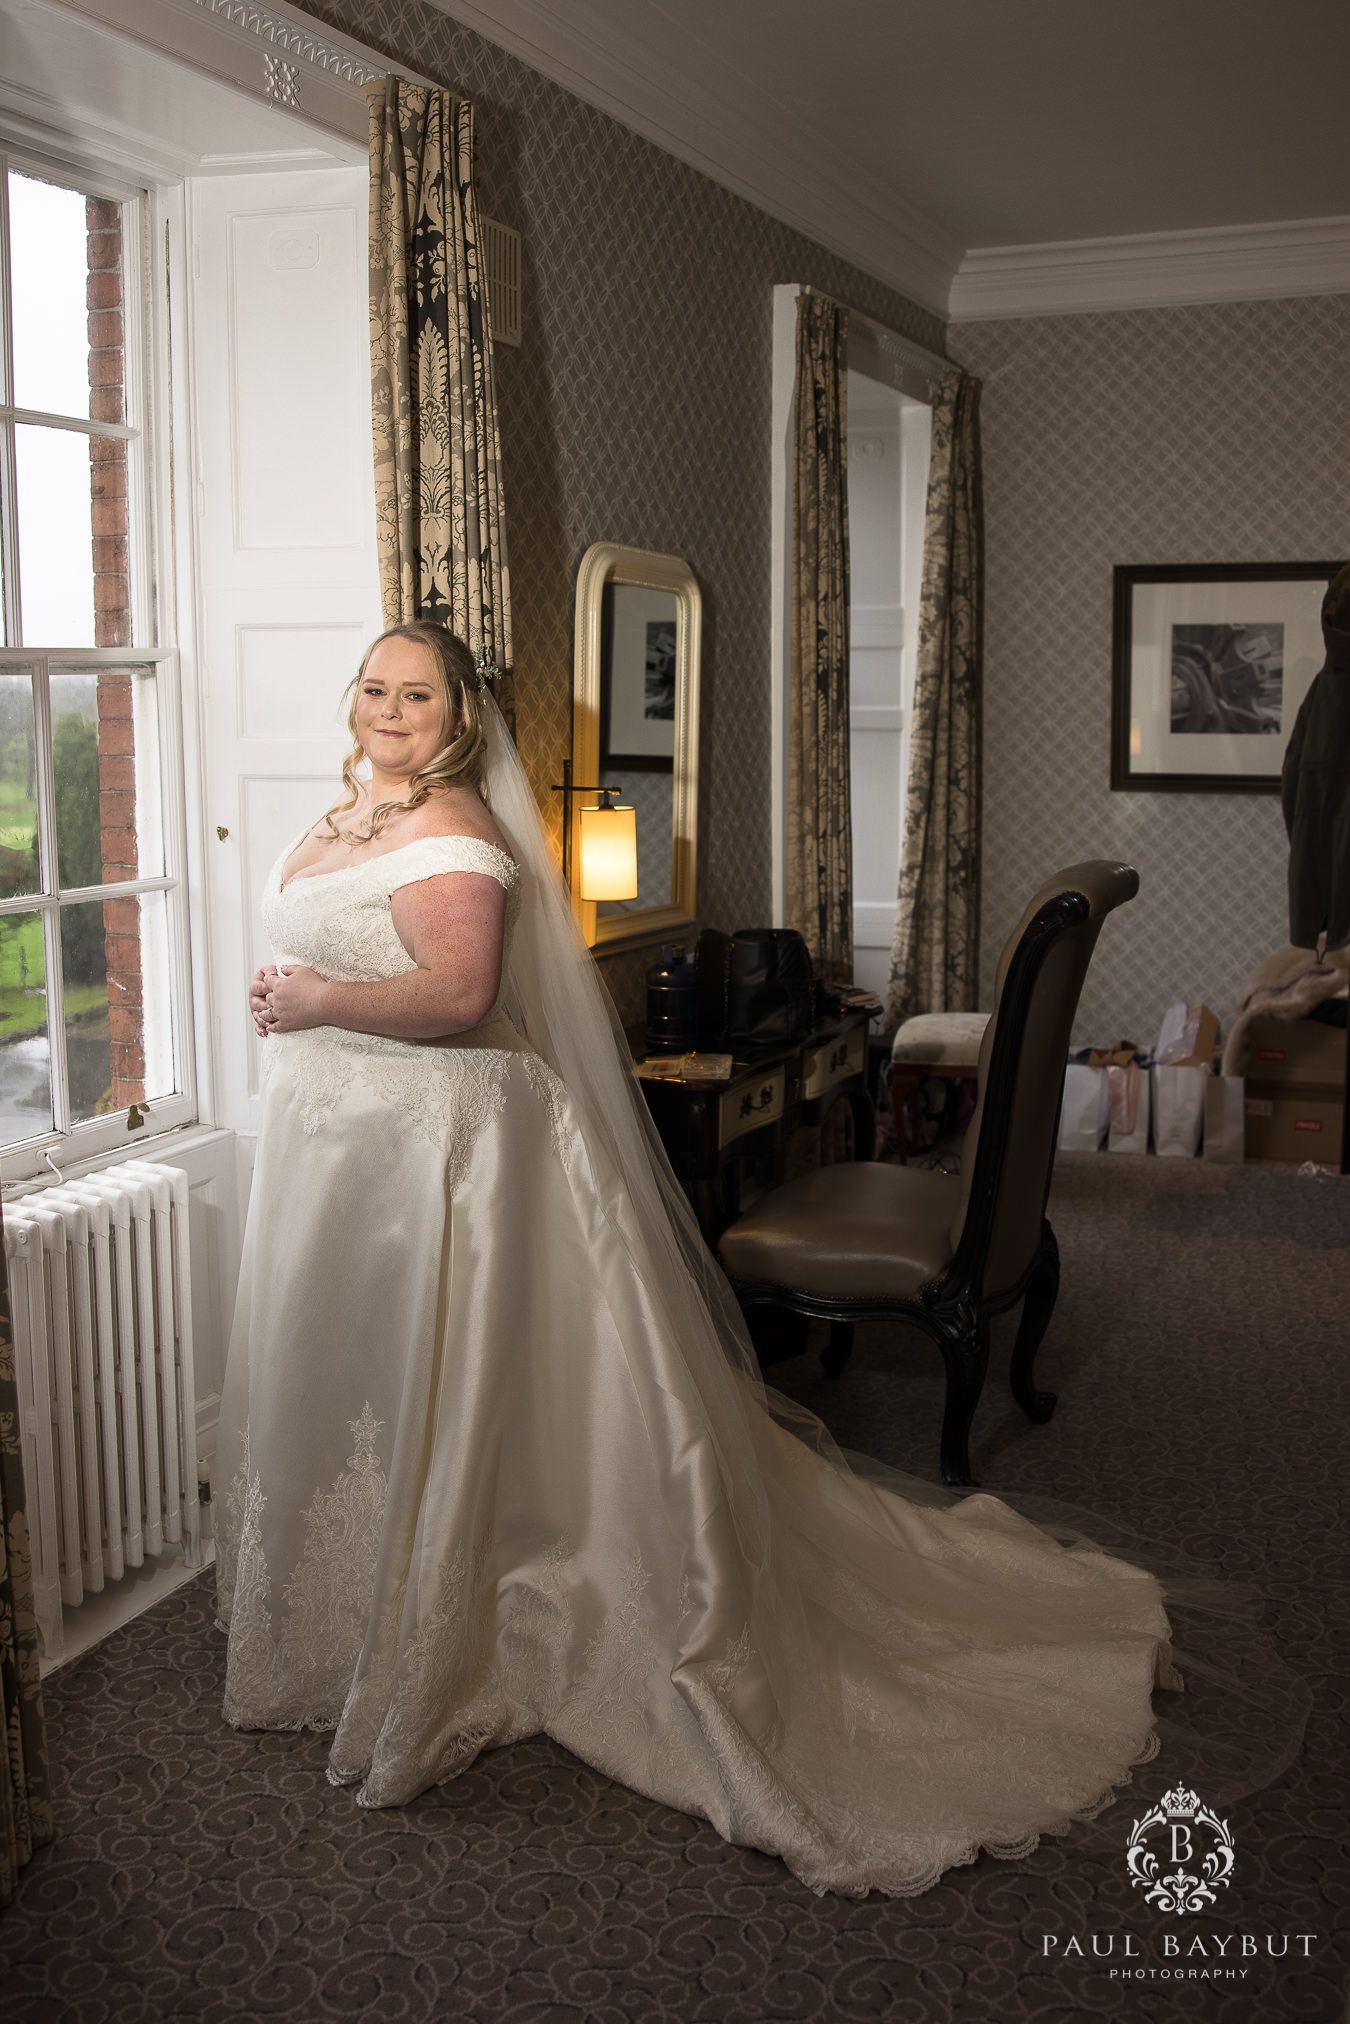 Cheshire bride in whire dress at Mottram Hall luxury Manchester wedding venue